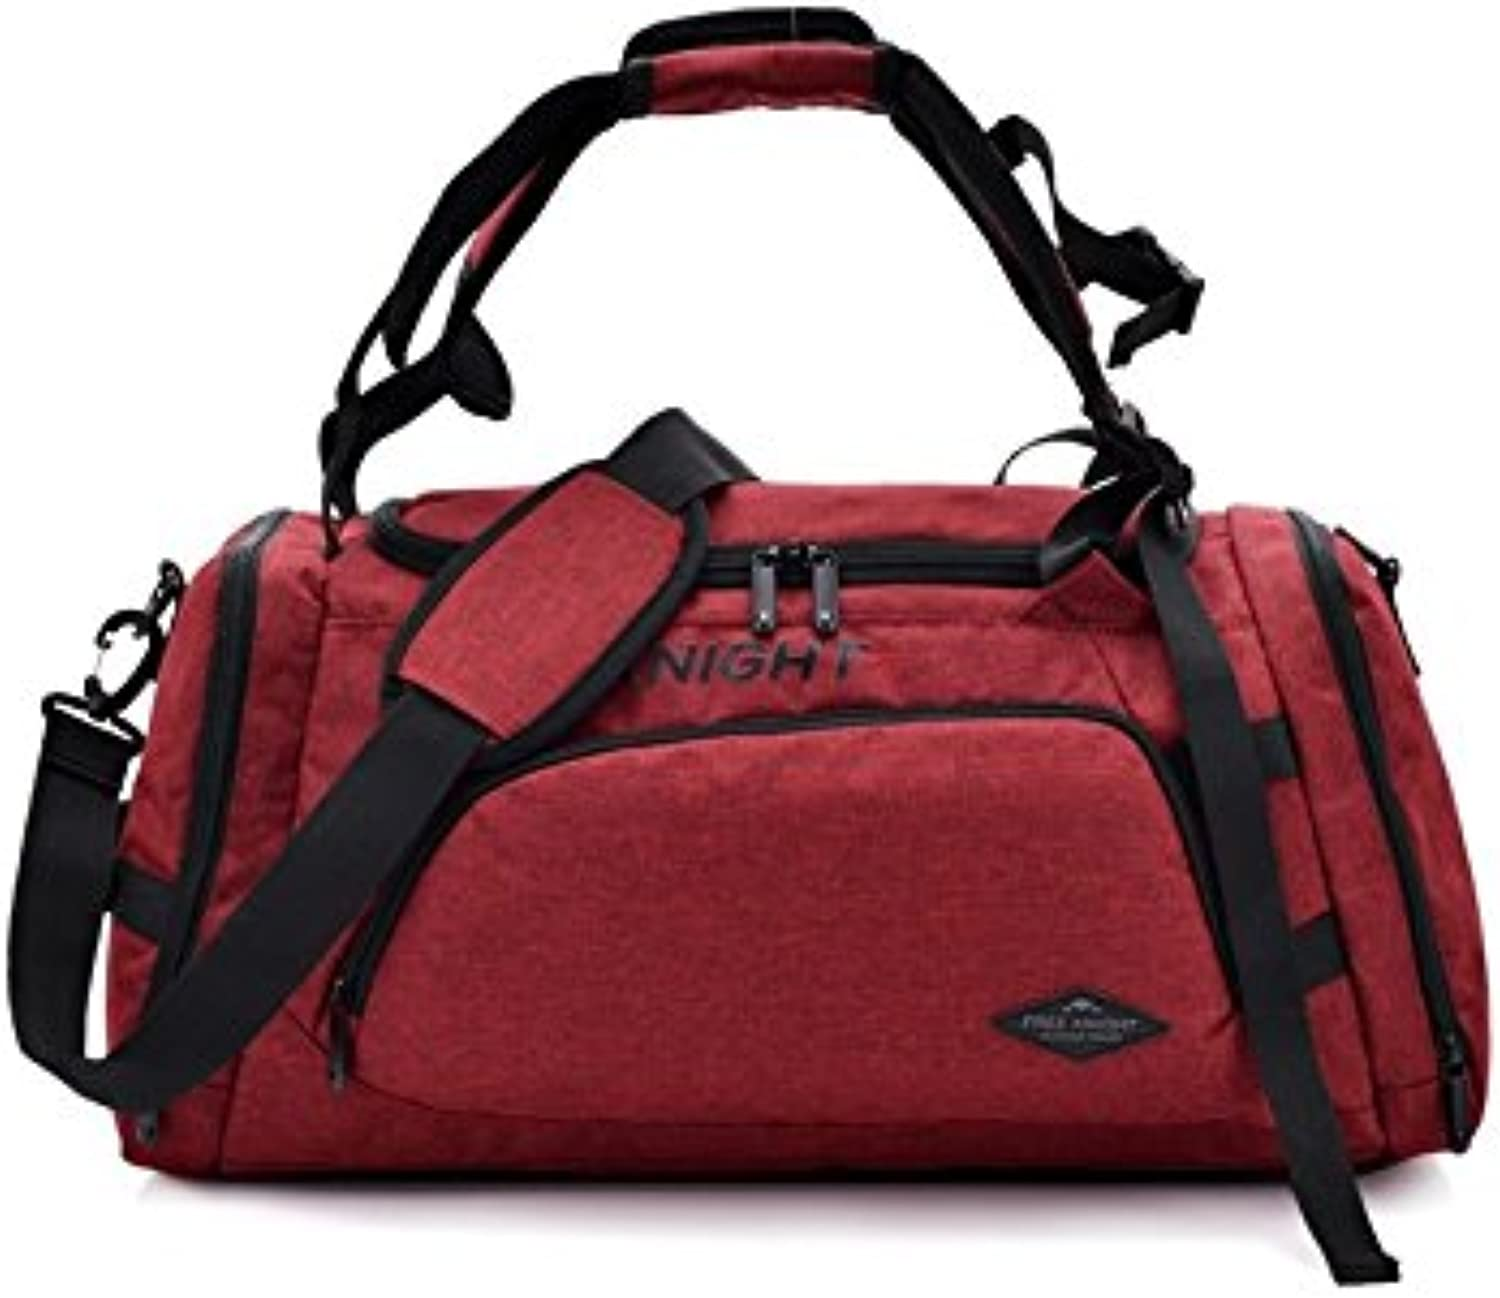 Hiking Waterproof Polyester Large Capacity Gym Bag Sports Holdall Travel Weekender Duffel Bag(Red) for Outdoor Traveling